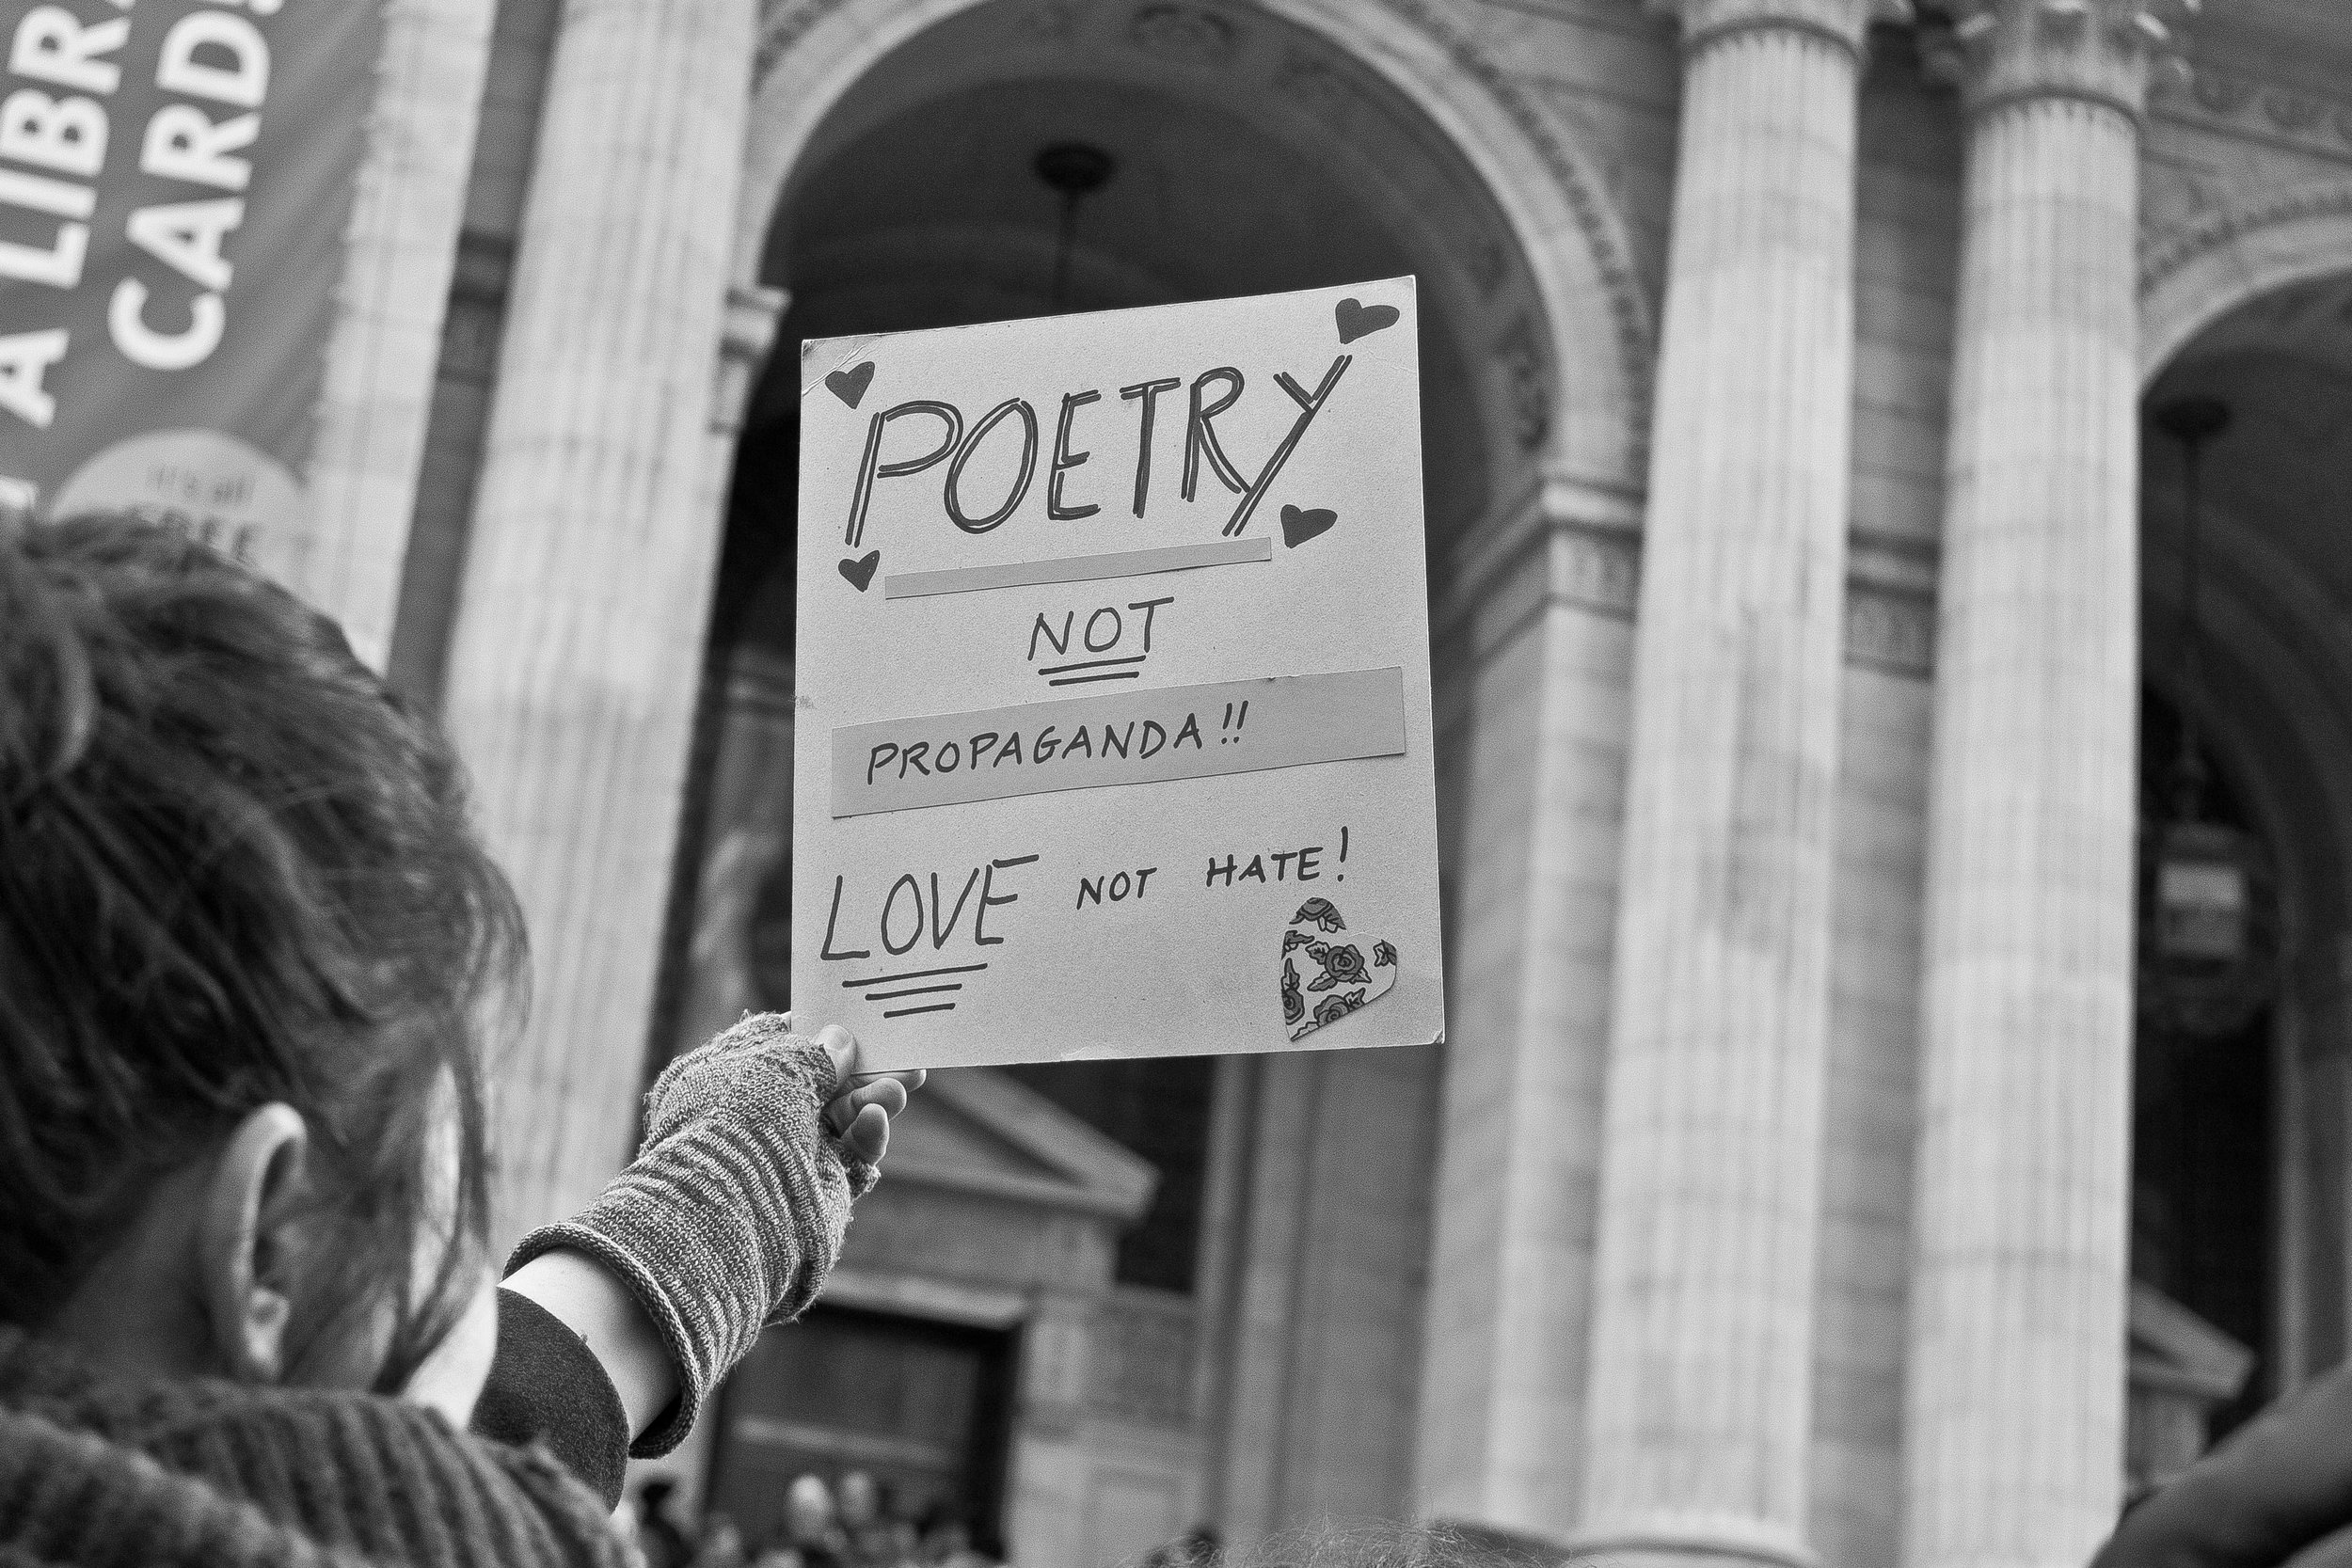 A poet holds up a sign outside of the New York Public Library during the Writers Resist action.